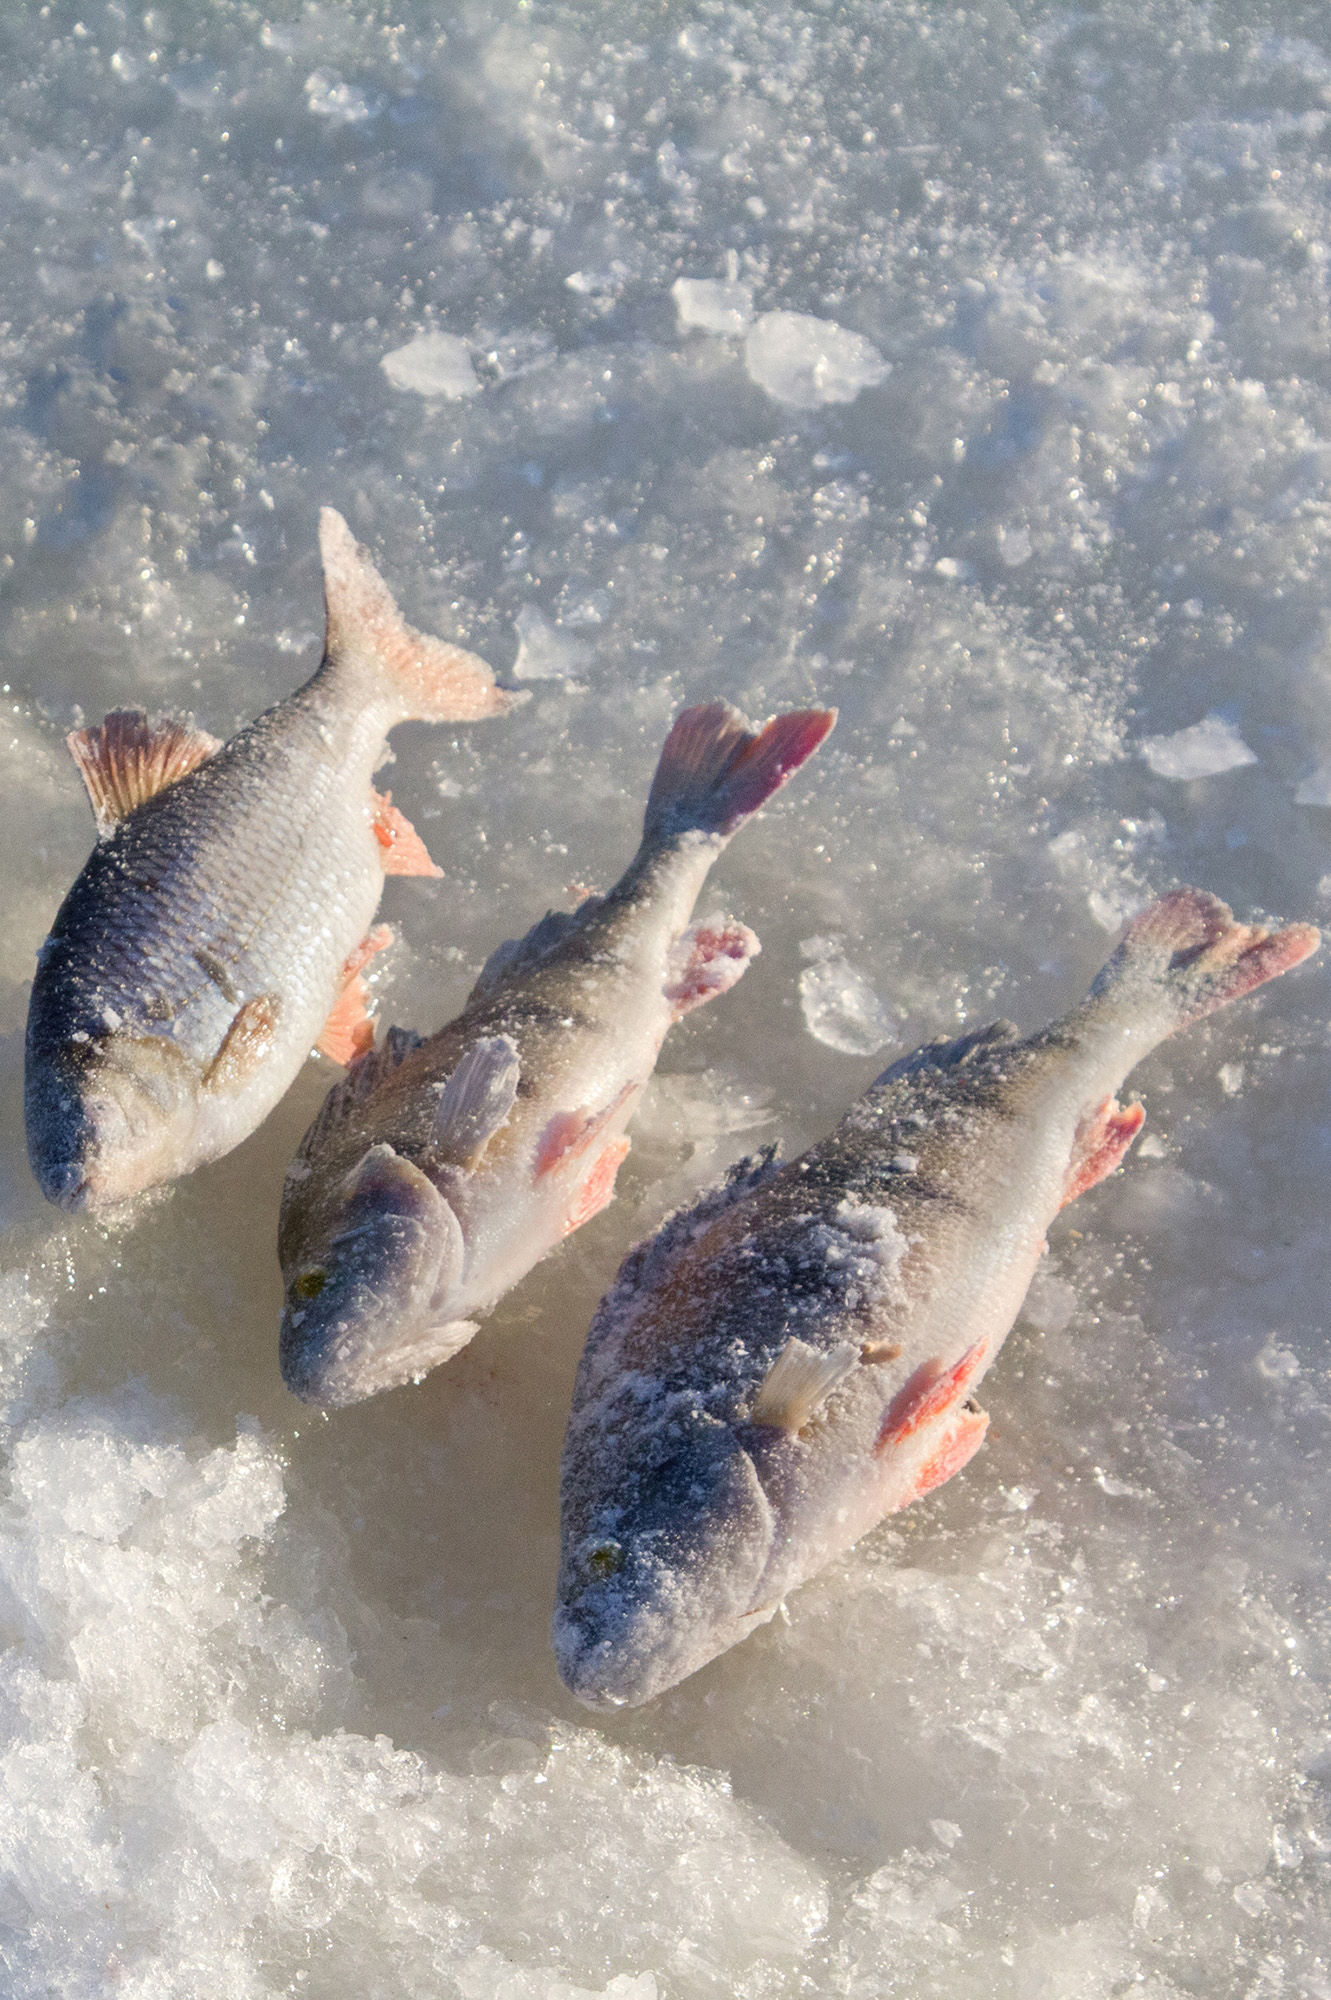 Ice fishing for perch, trout and grayling